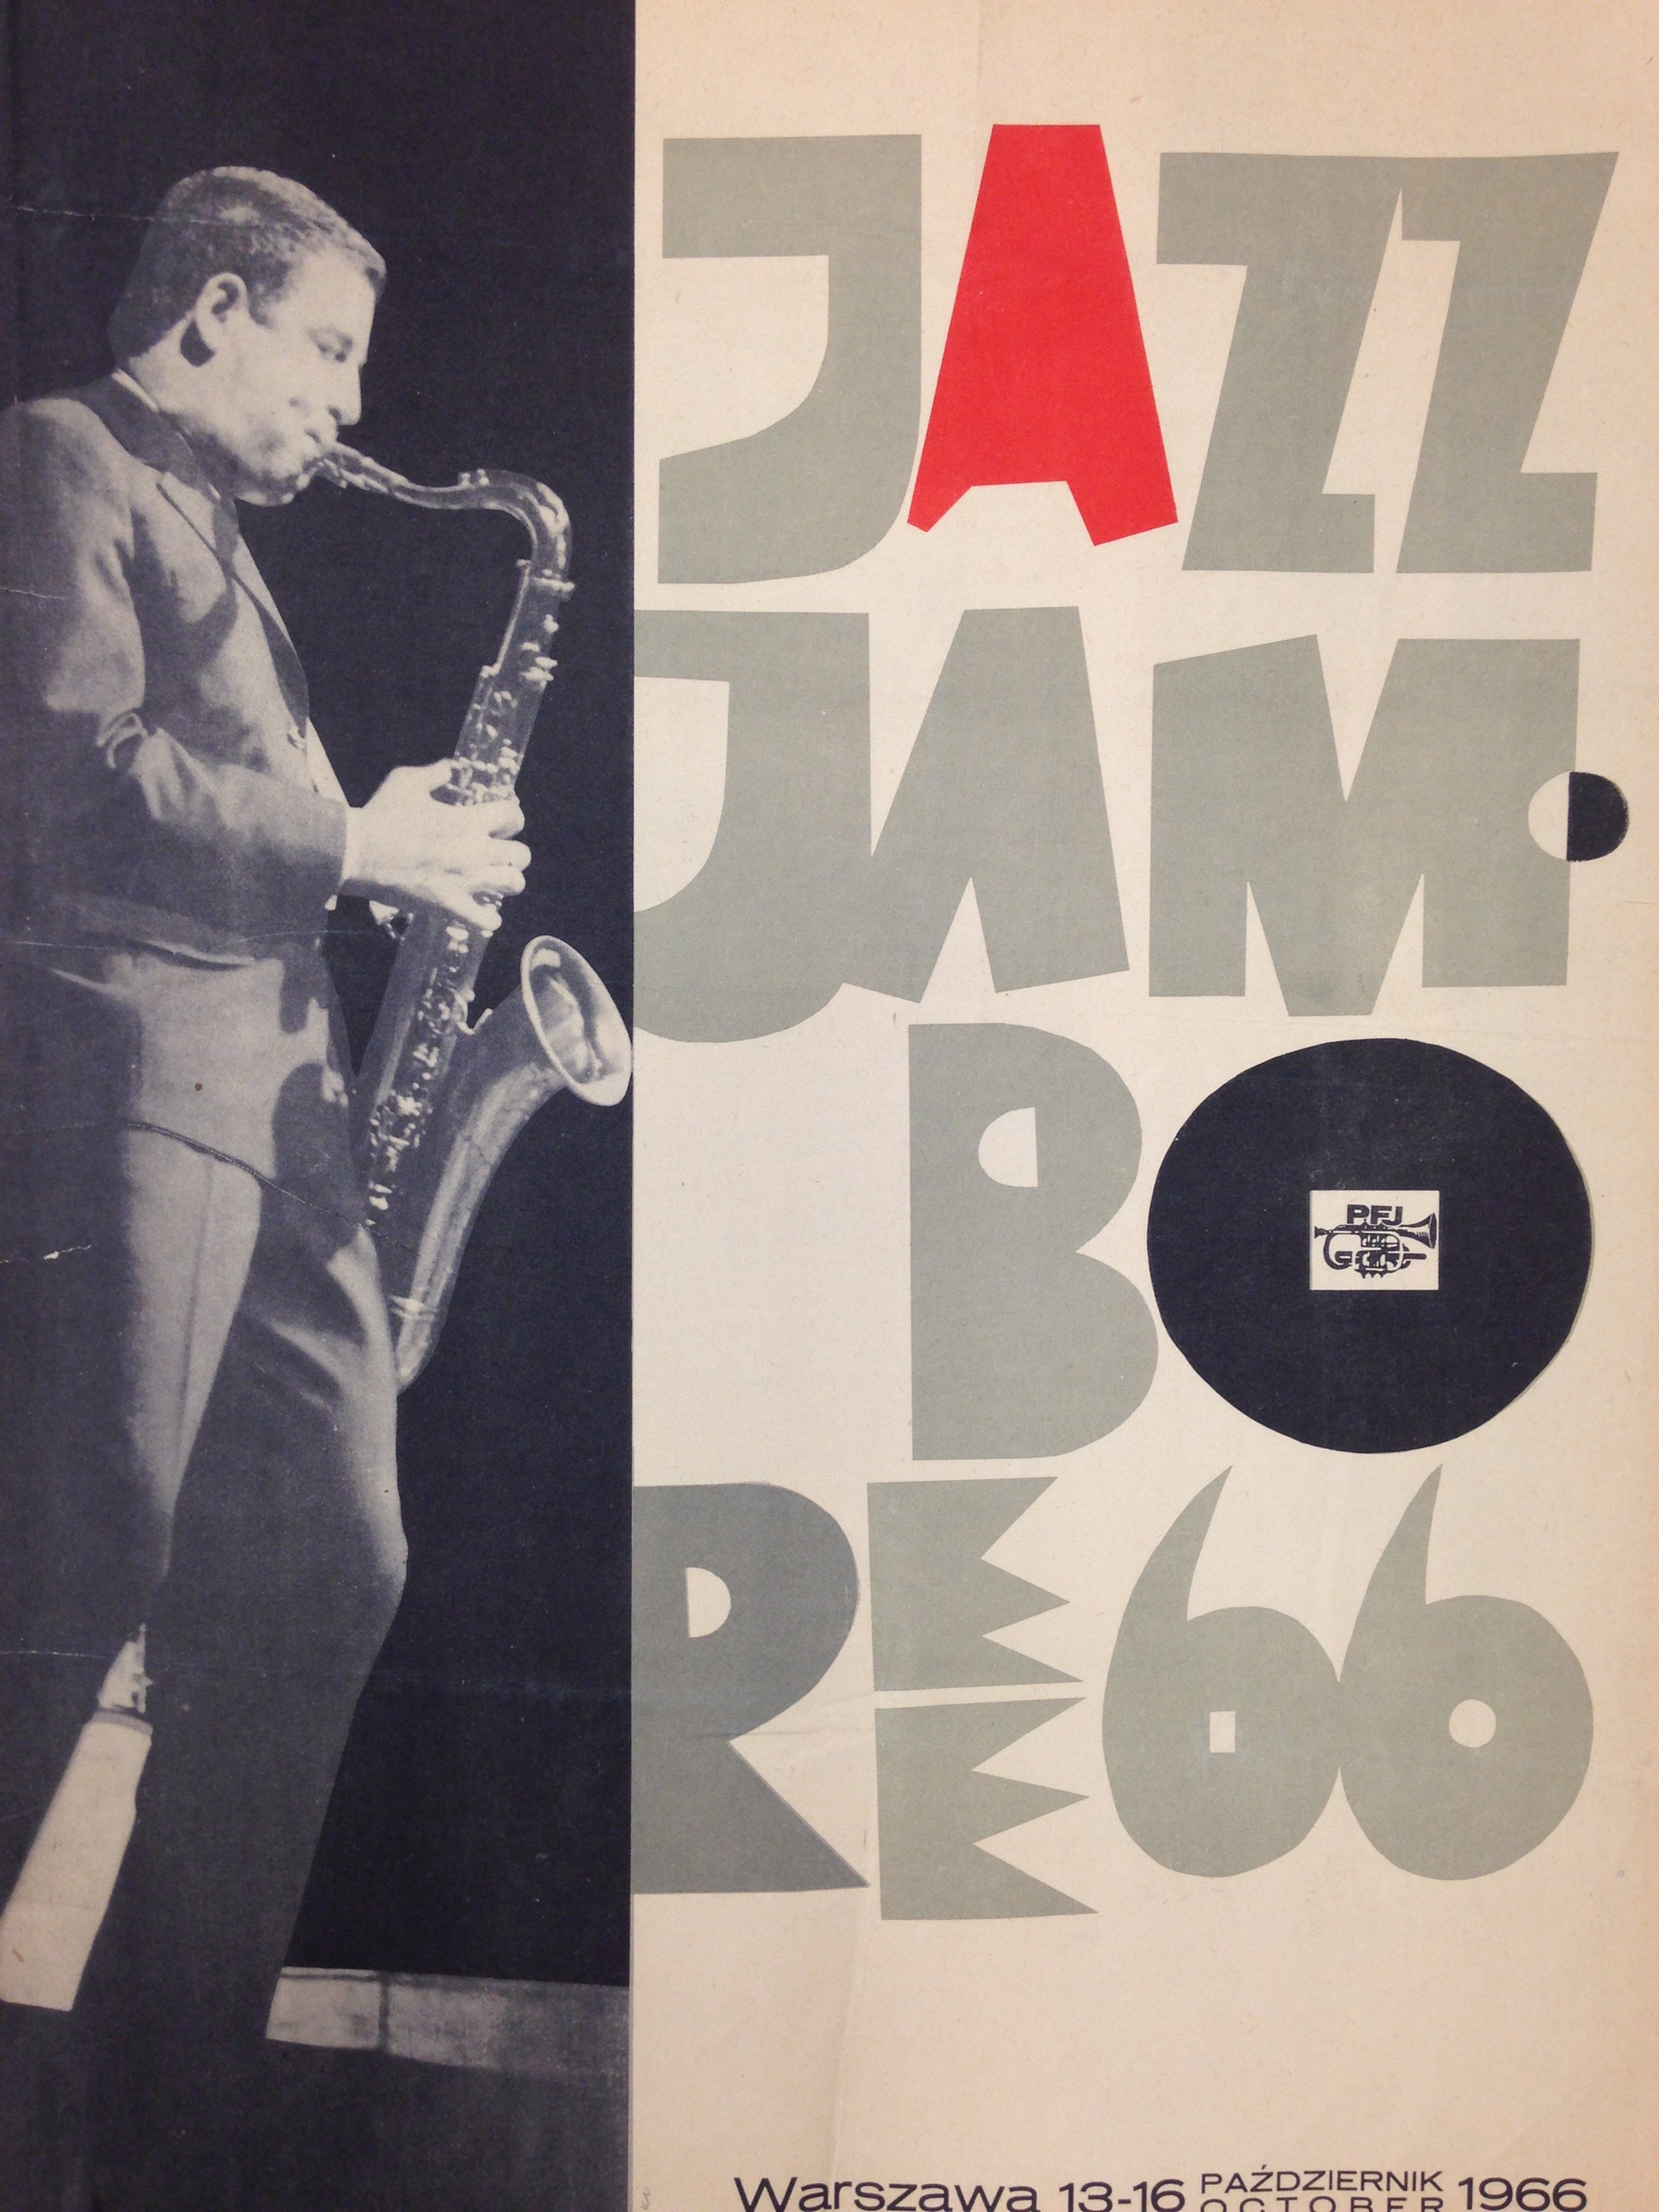 new orleans jazz archives jazz jamboree october 1966 warsaw poland jazz poster spring finn and co adventures